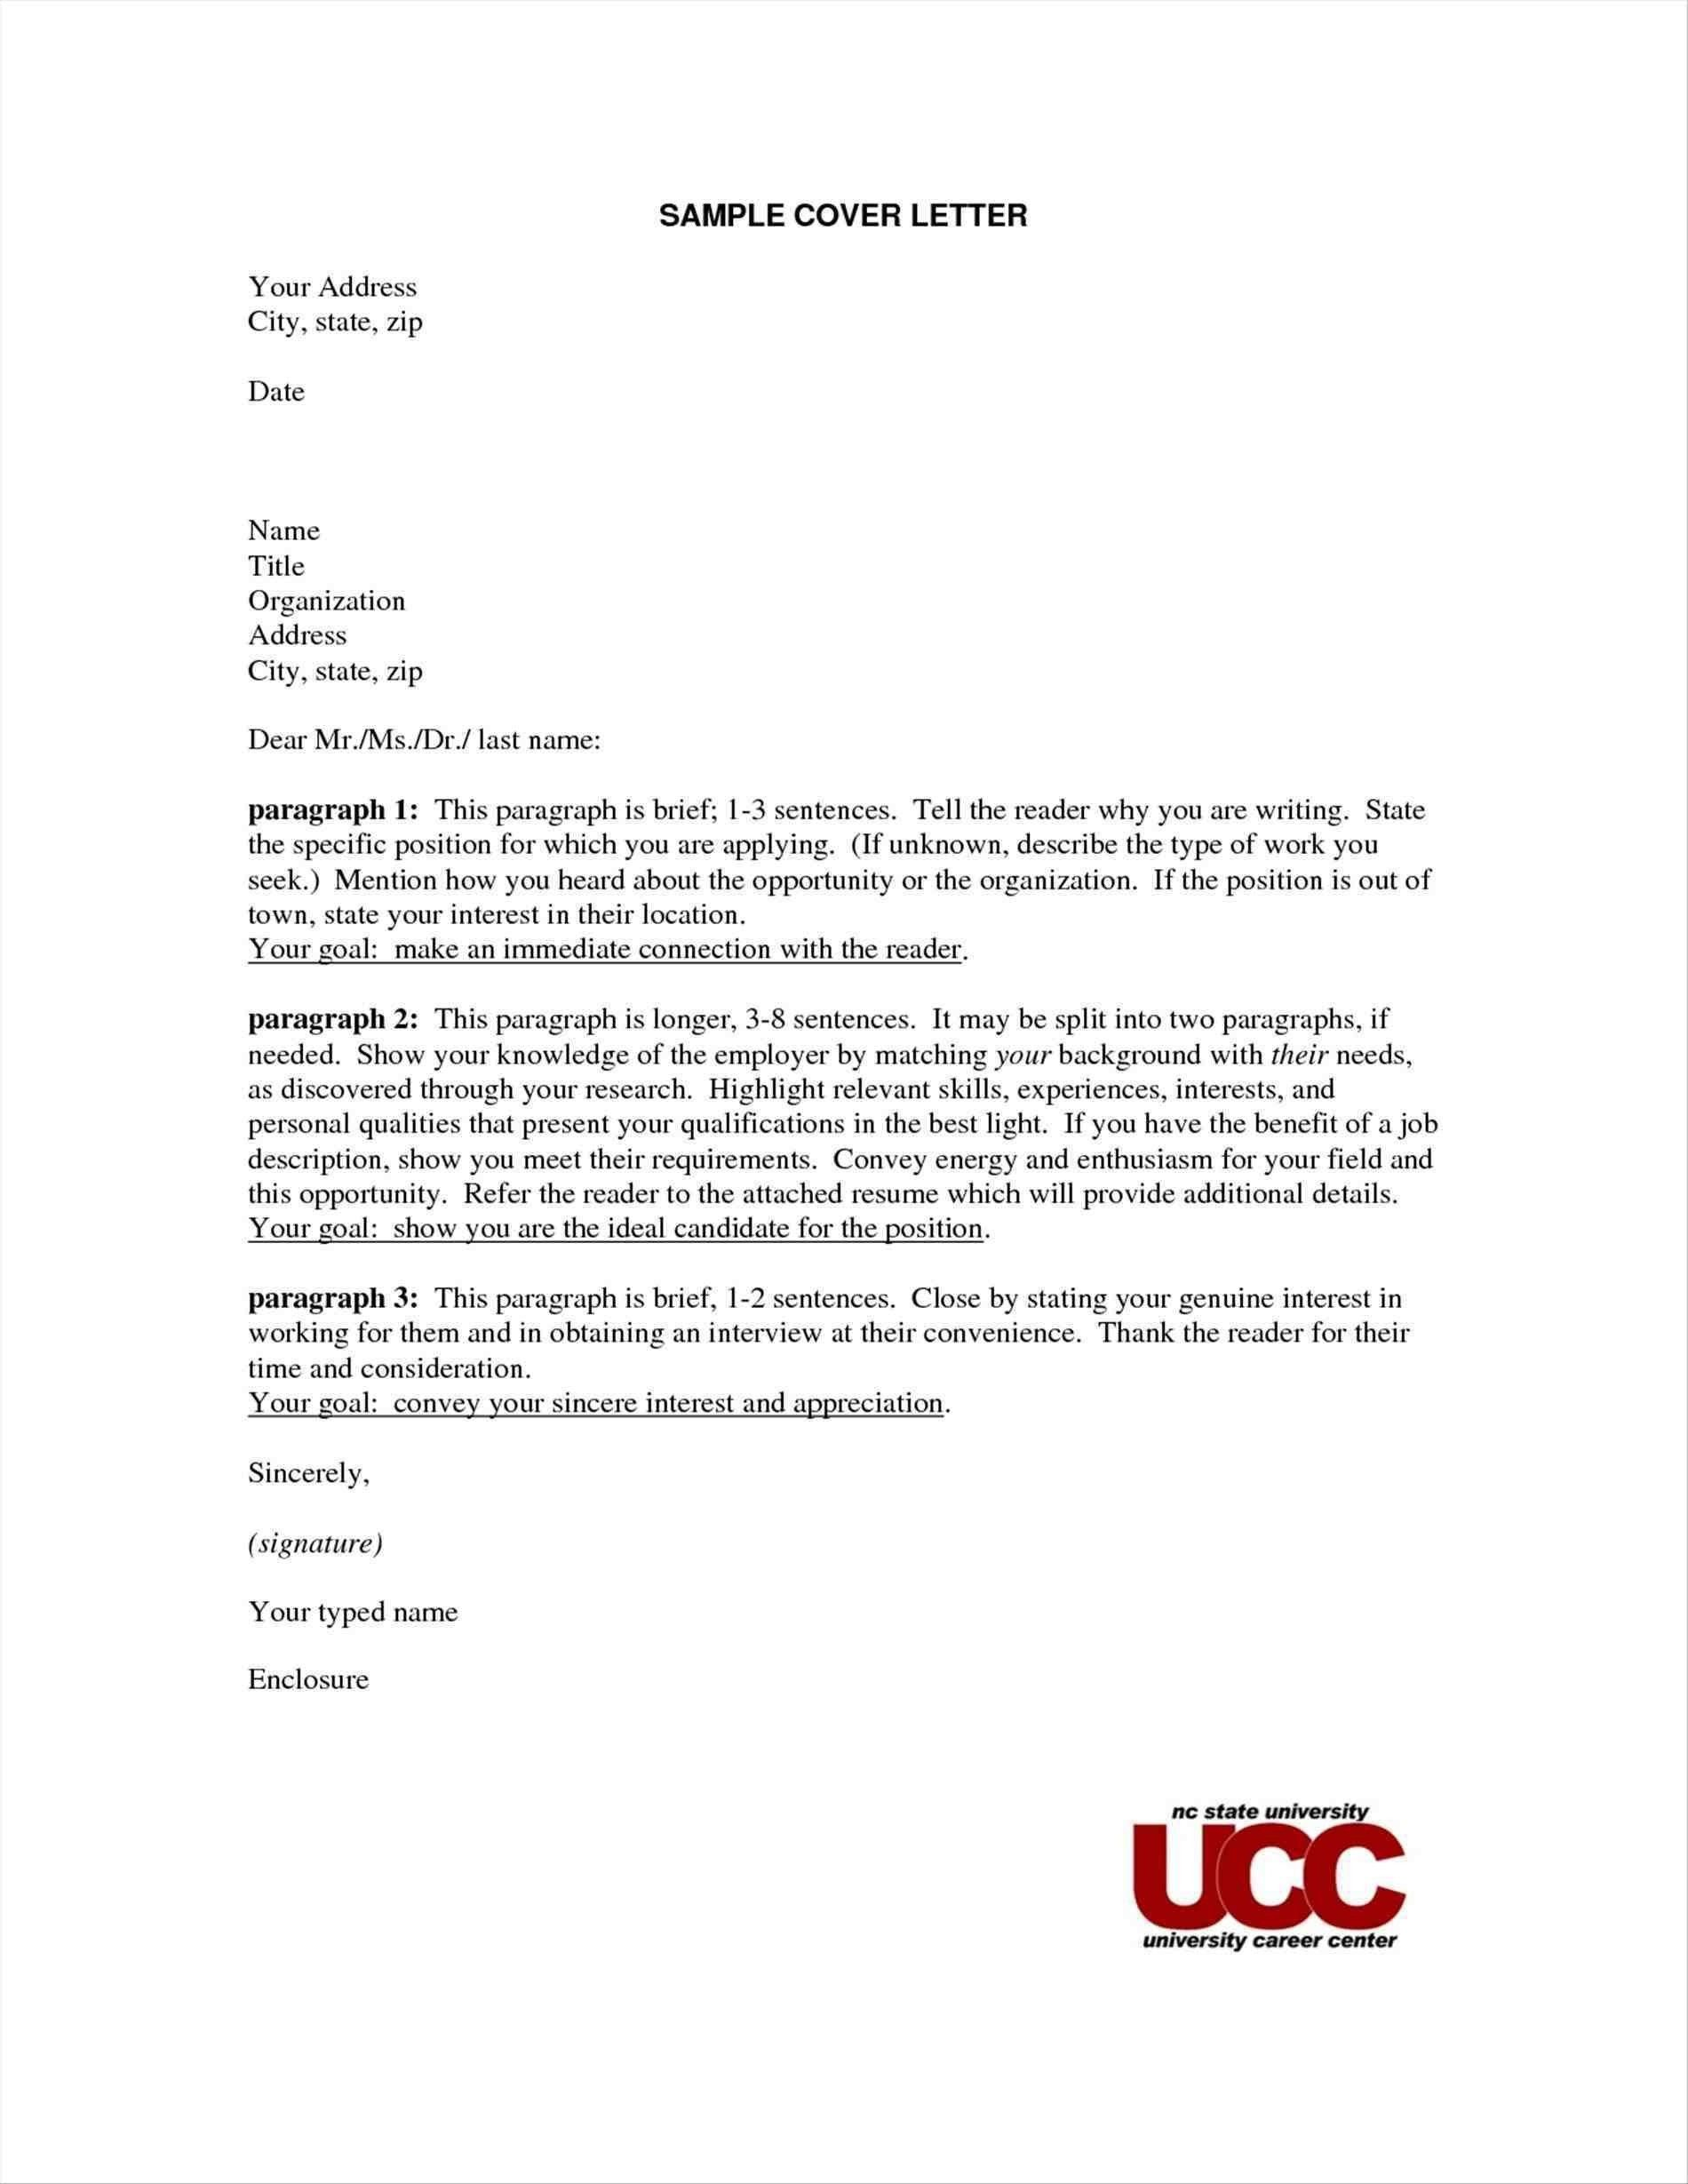 25 how to address a cover letter with no name how to address a